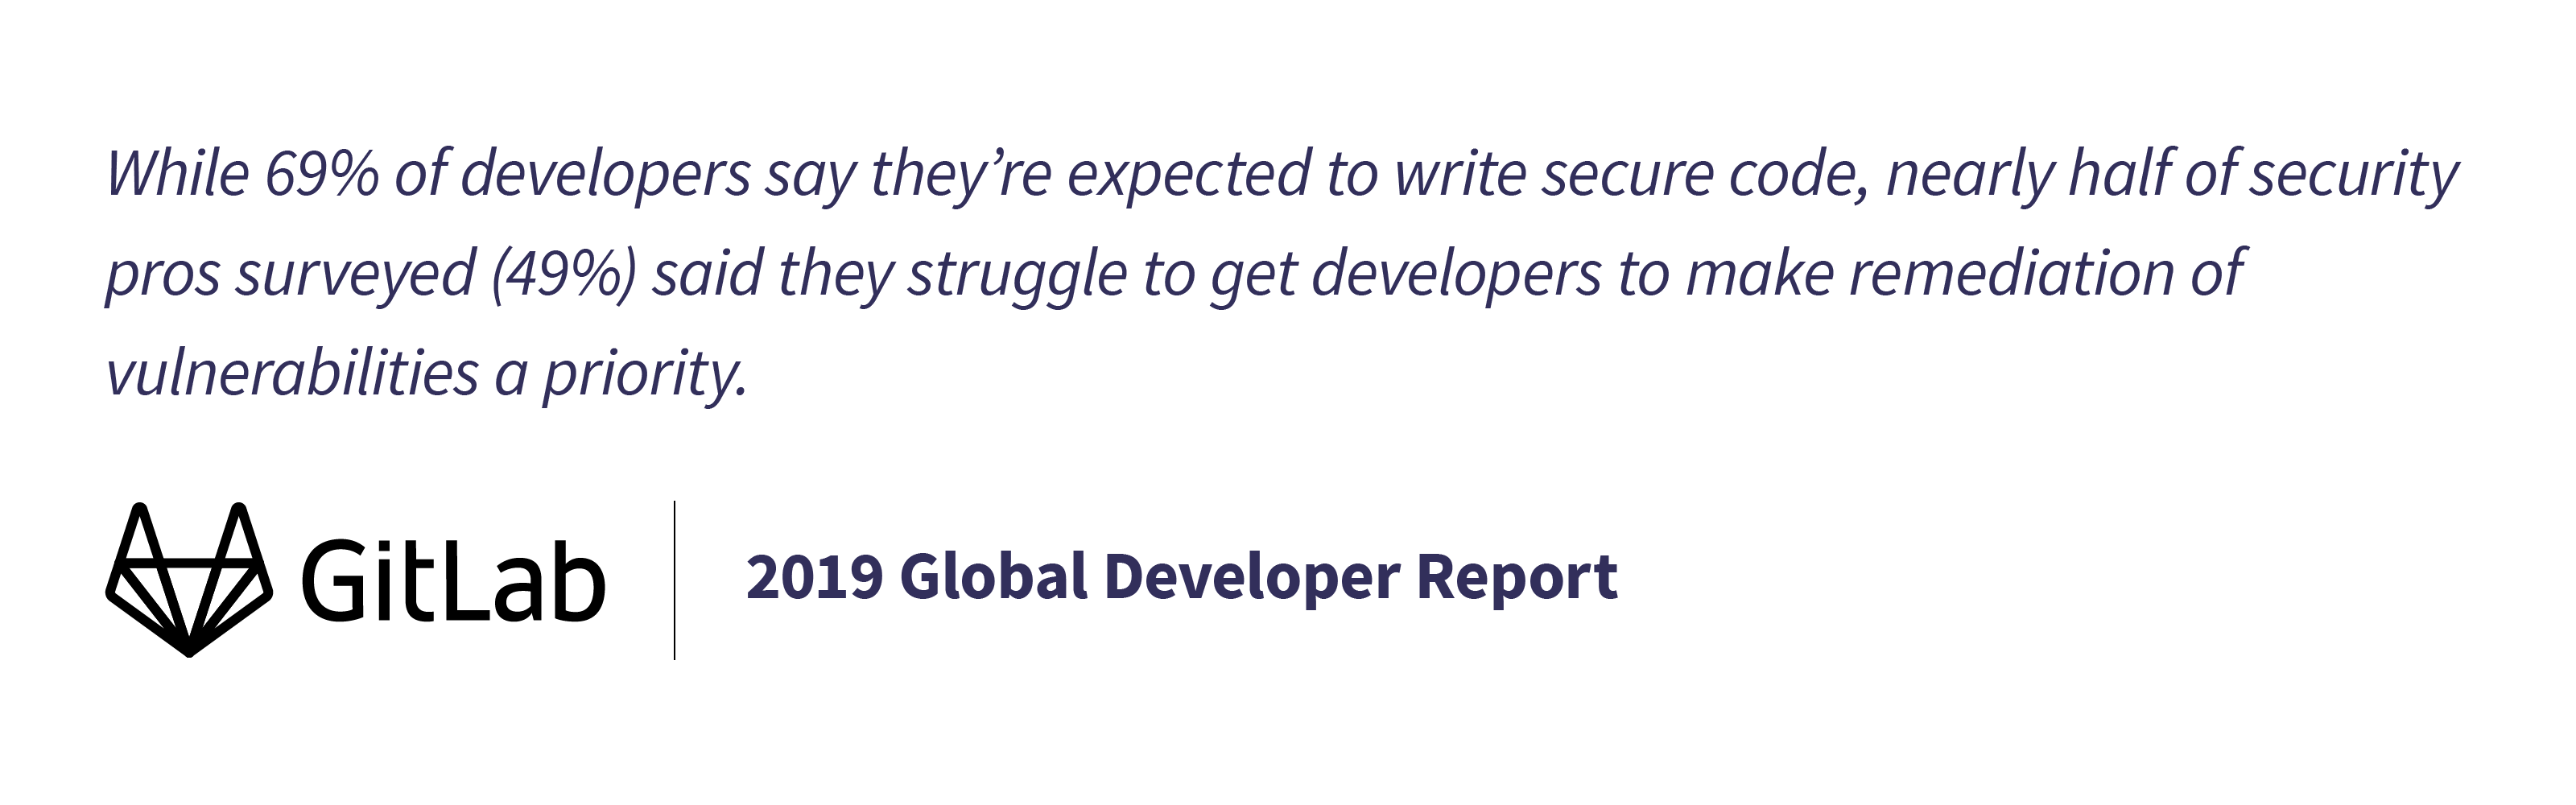 2019 Developer Report security findings